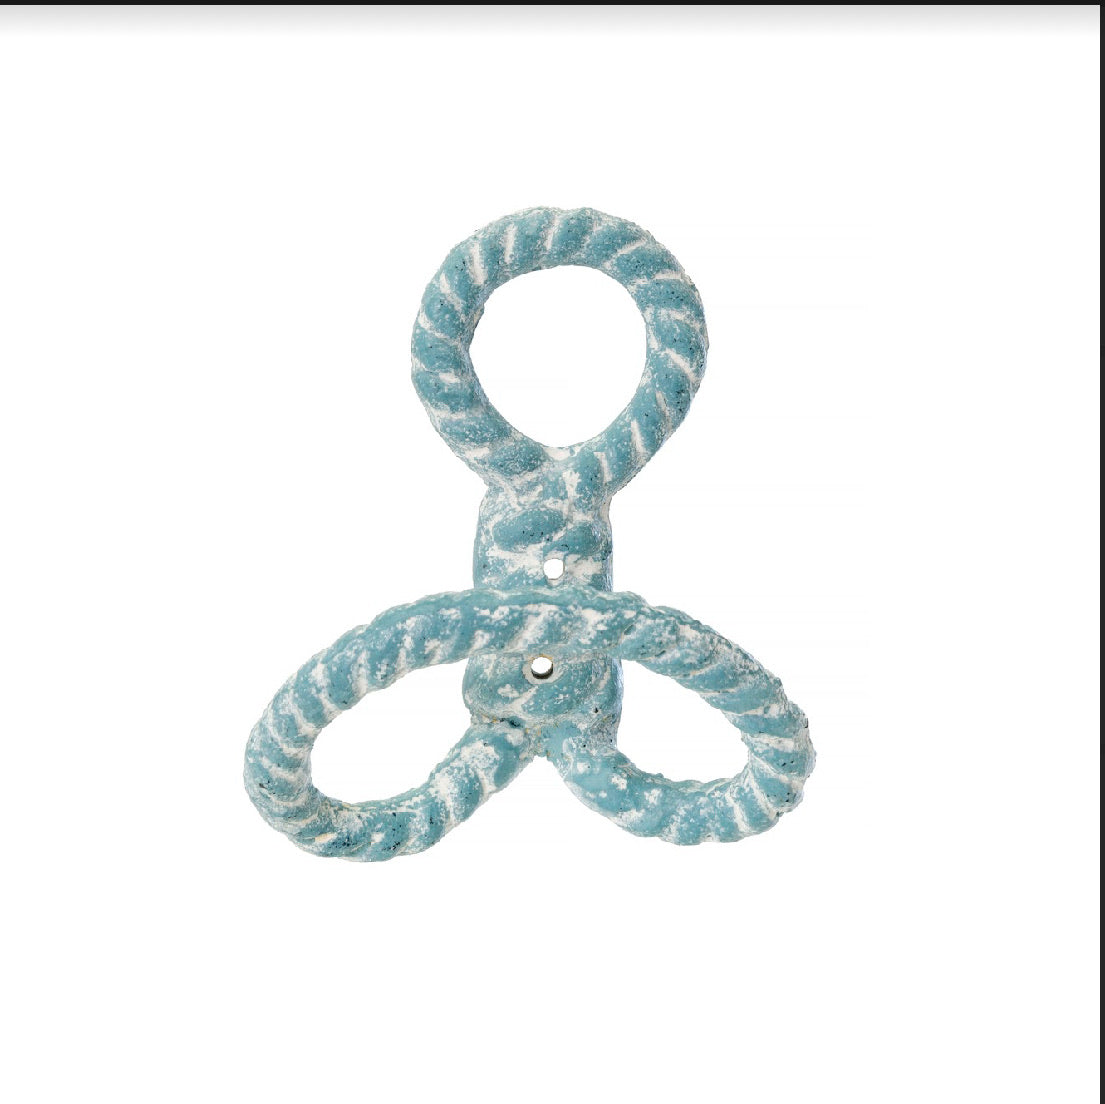 Nautical Knot Hook - Turquoise